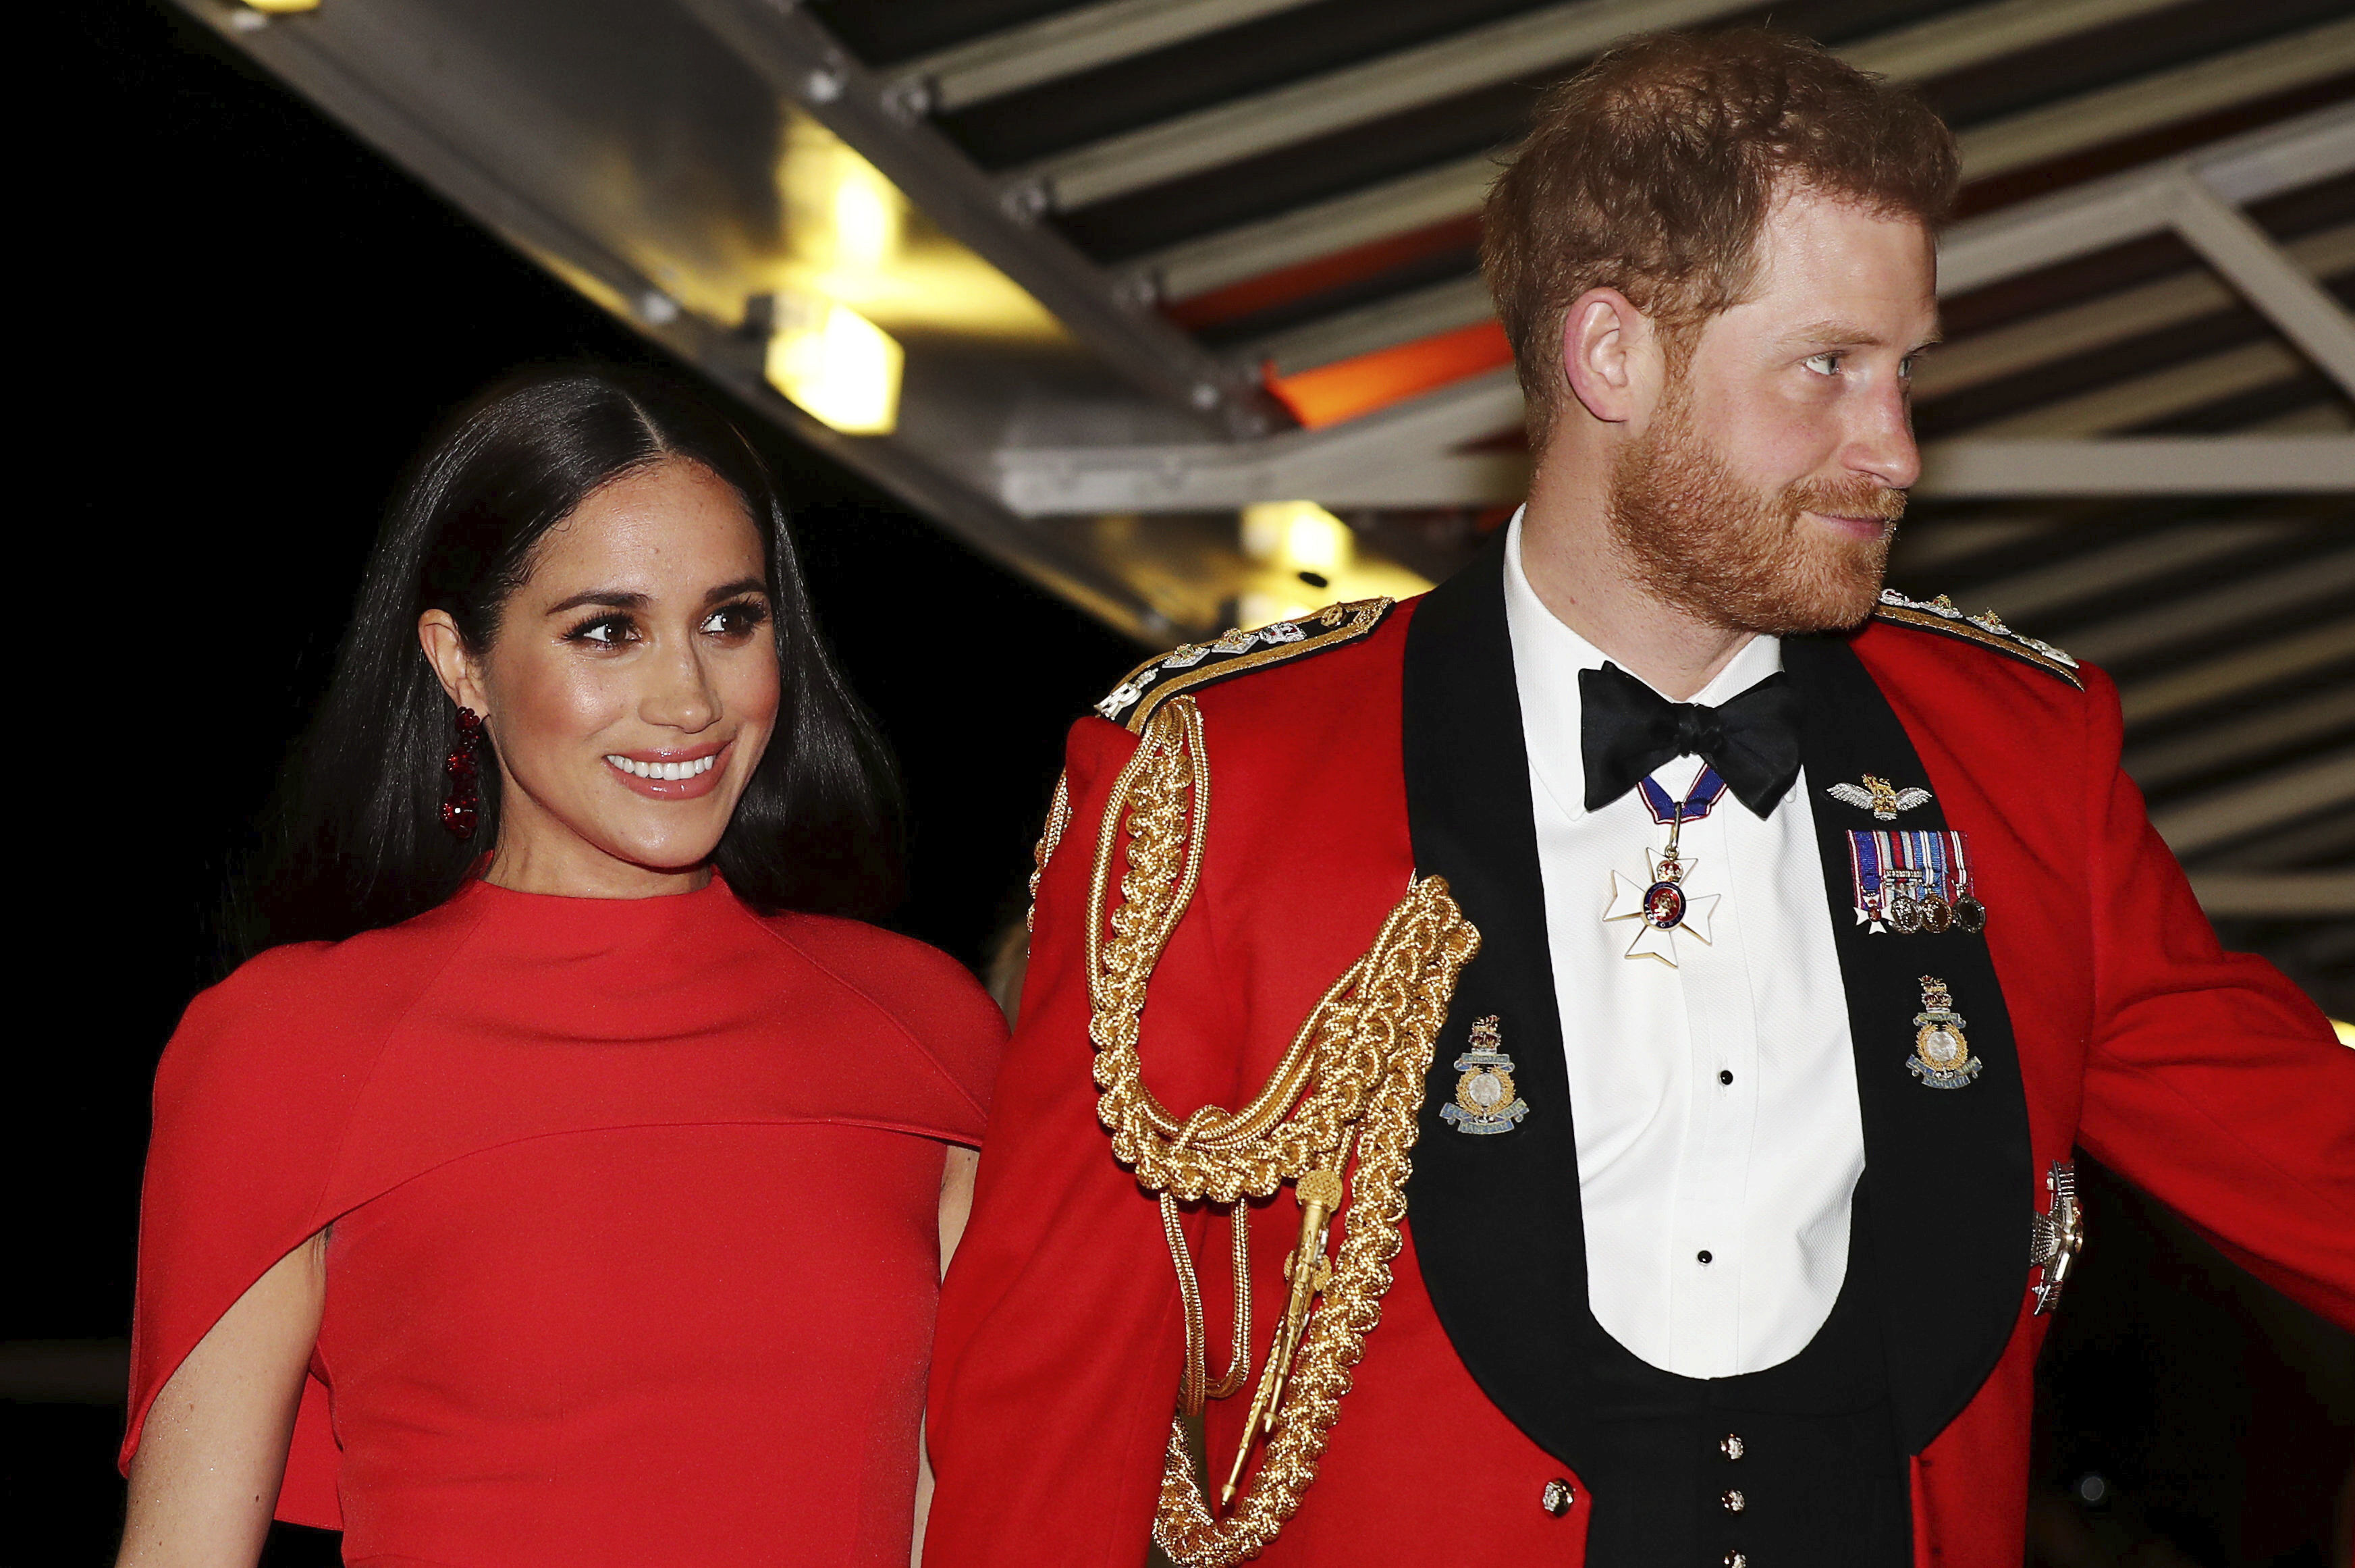 In this March 7, 2020 file photo, Britain's Prince Harry and Meghan, Duchess of Sussex arrive at the Royal Albert Hall in London.